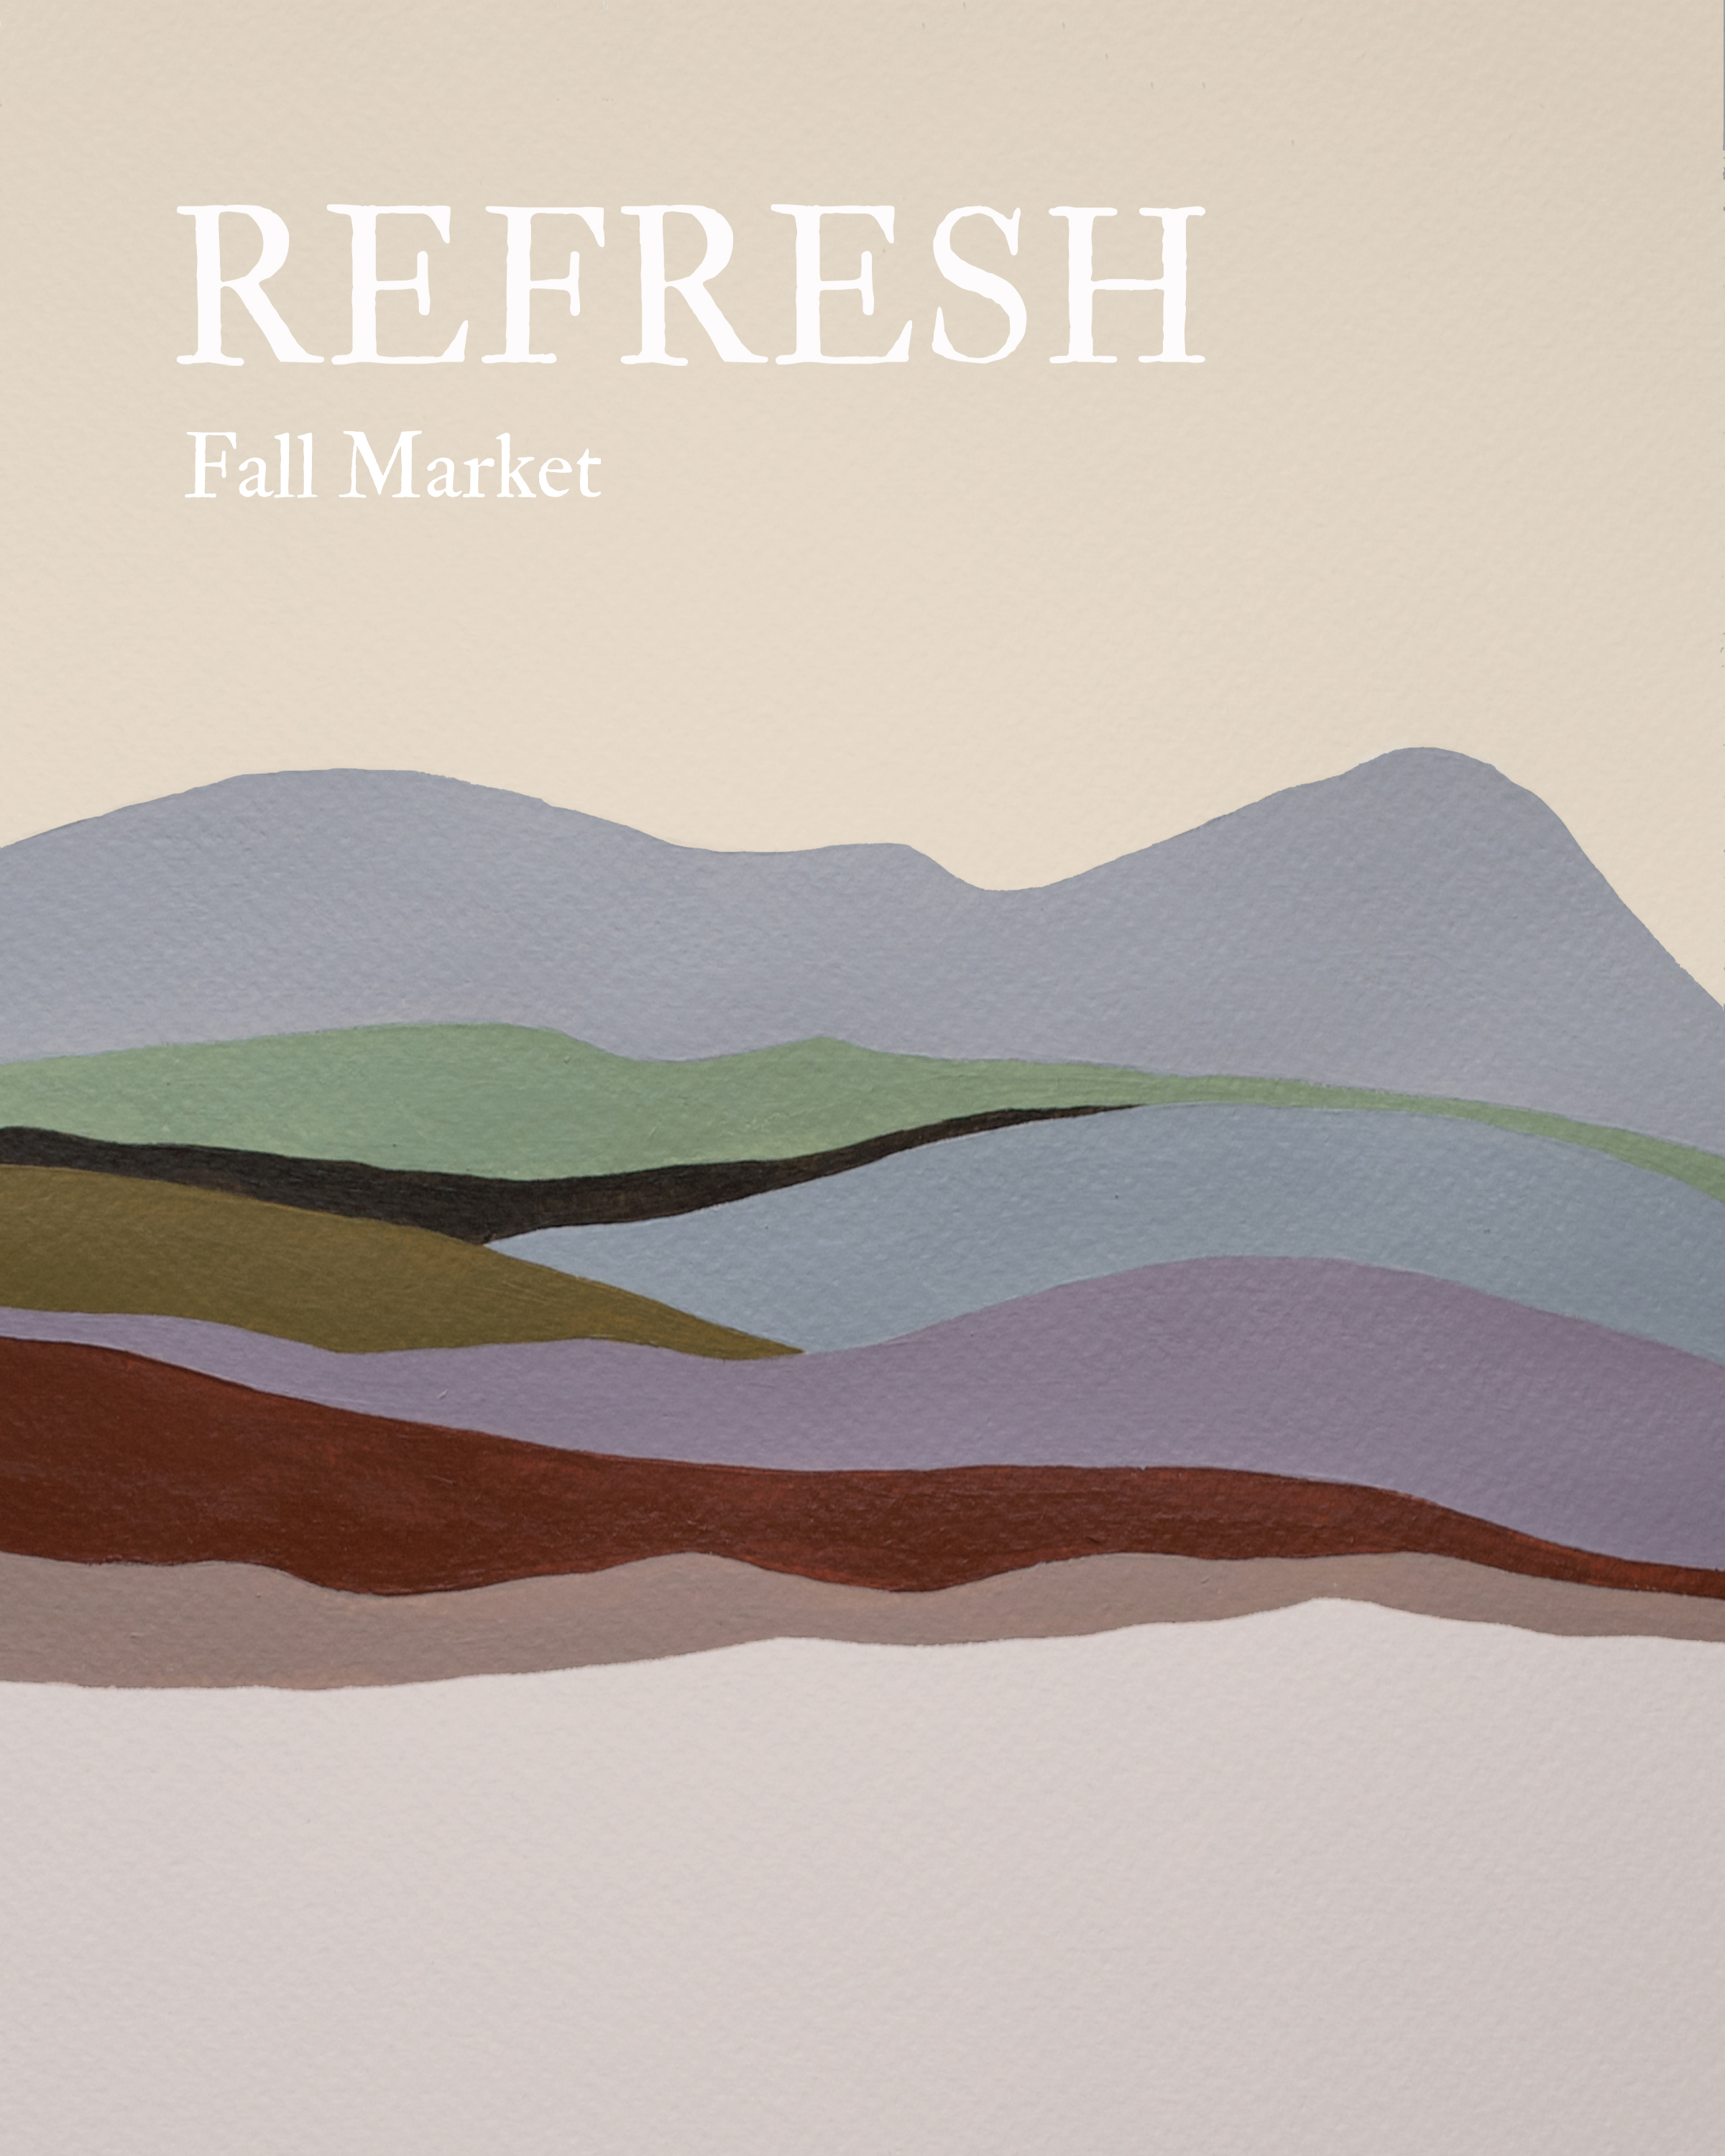 Refresh Fall Market 8x10 no text 2019.jpg